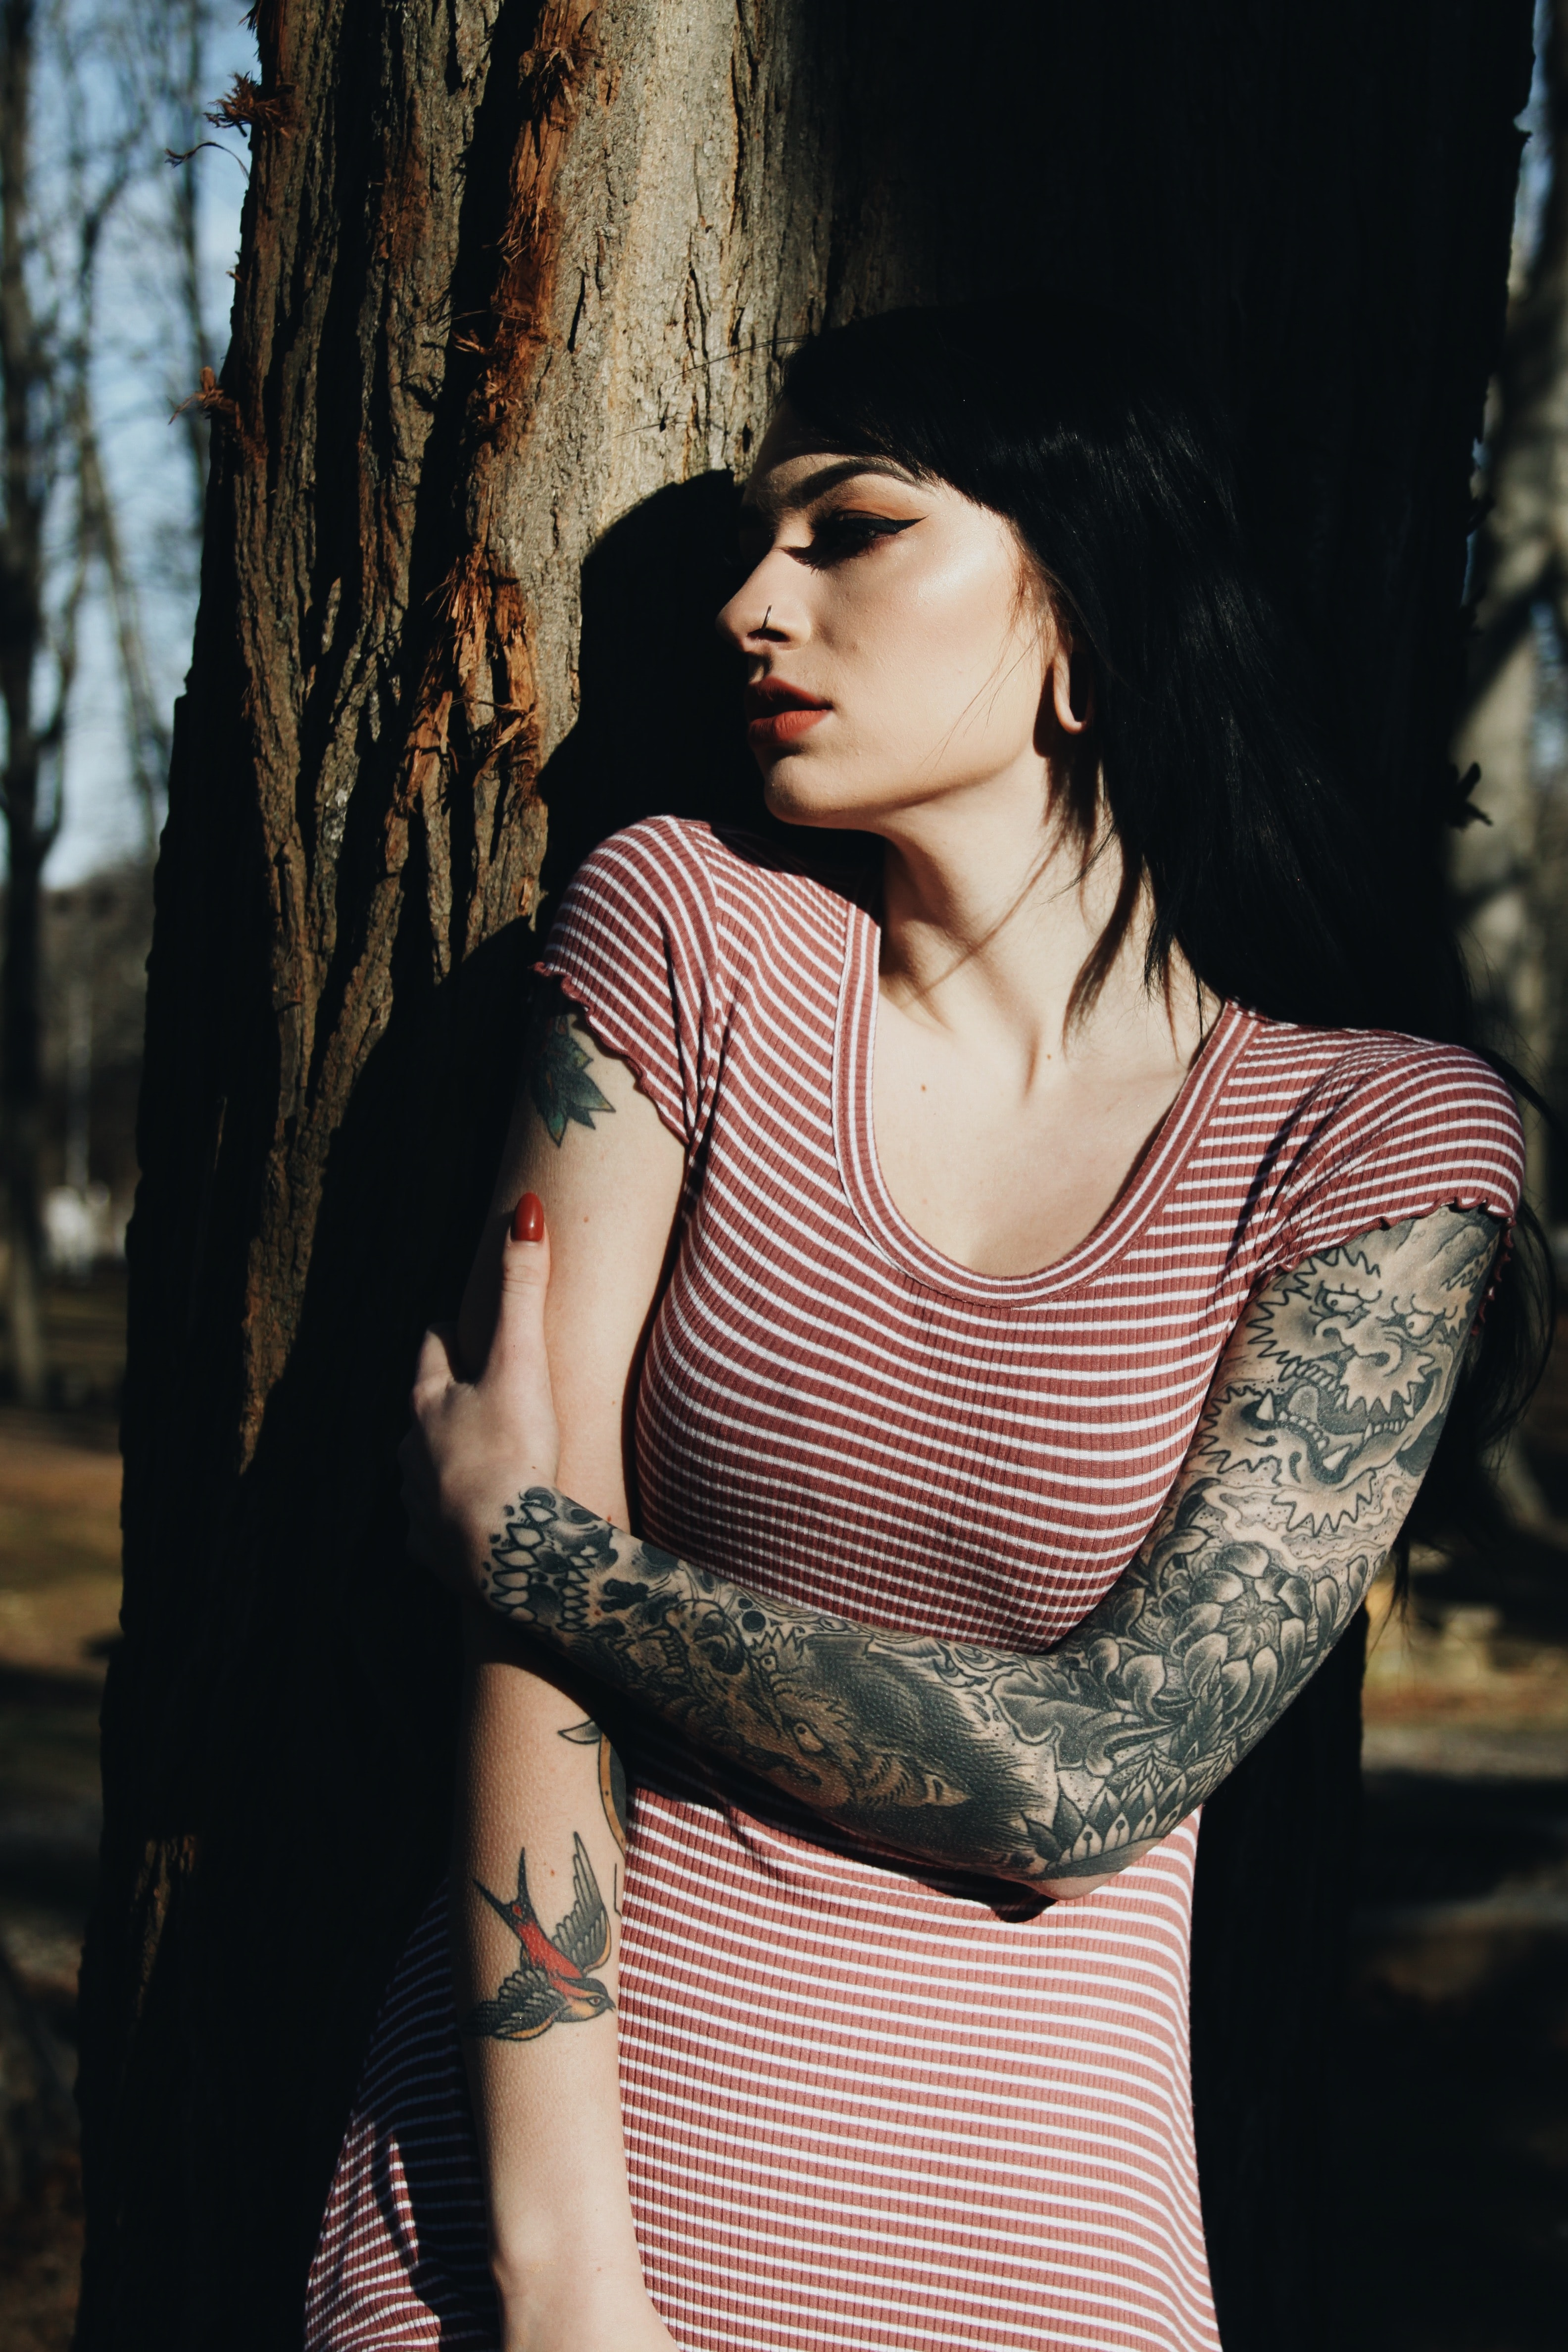 woman with dragon tattoo on left arm standing against tree